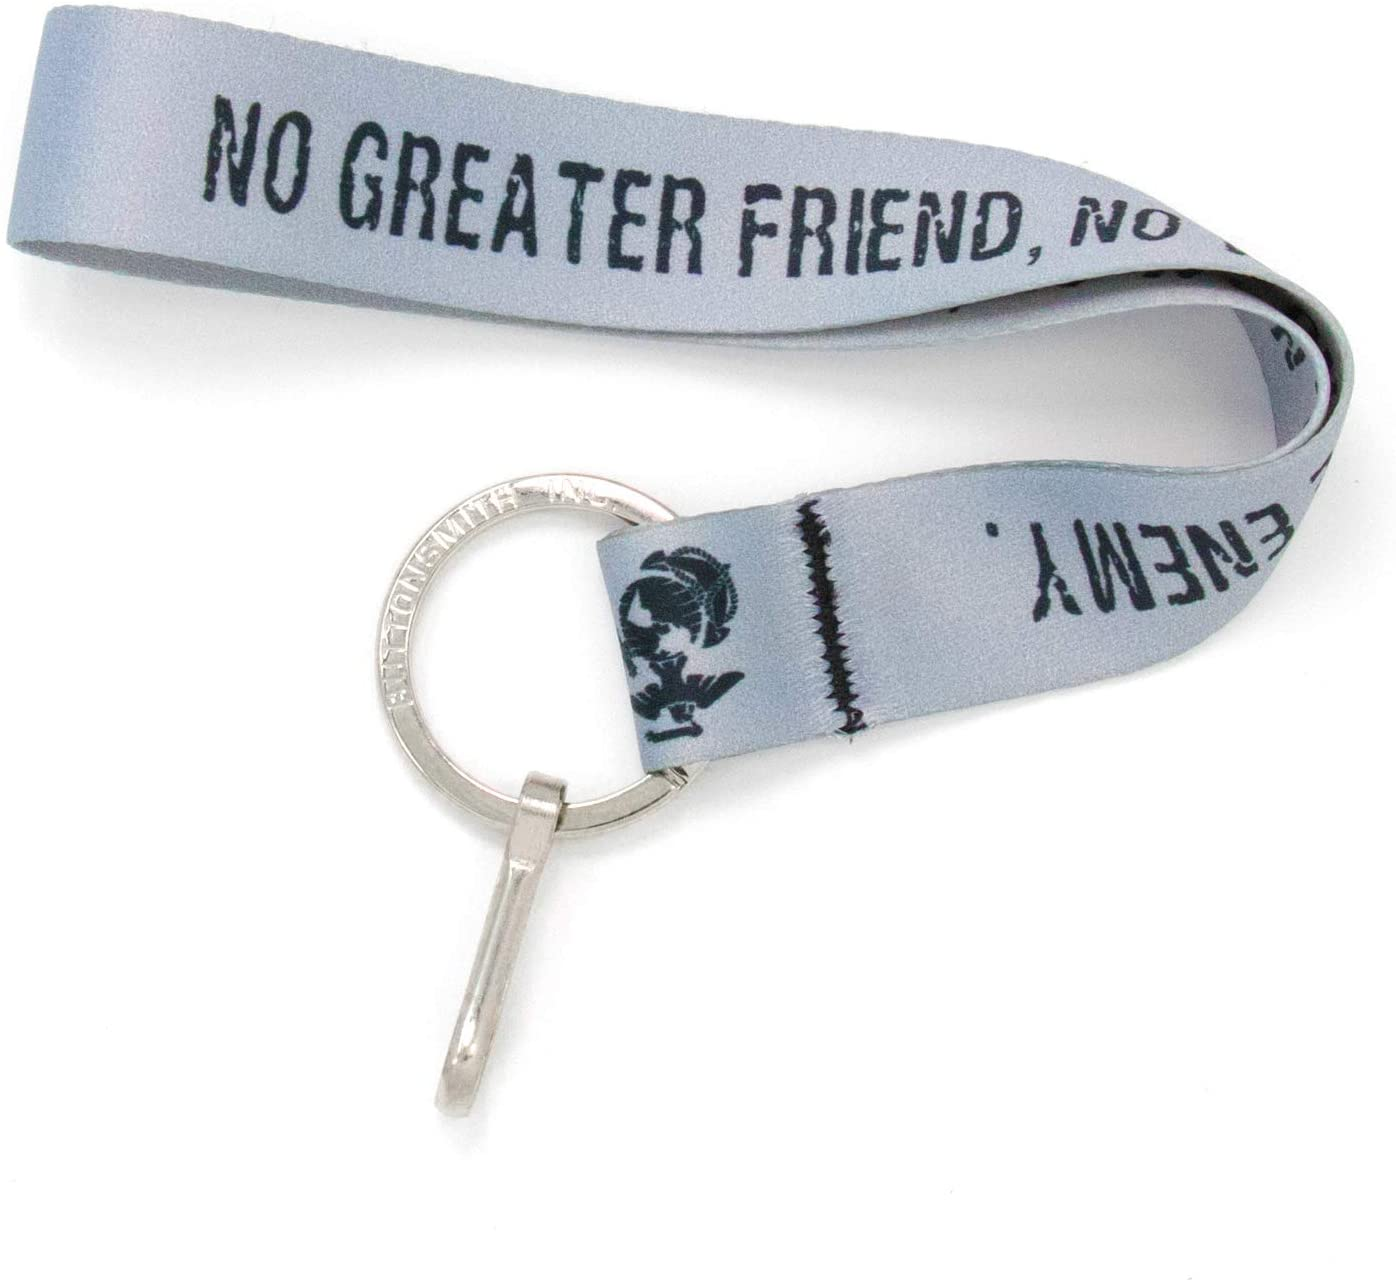 Buttonsmith No Greater Friend Grey Wristlet Key Chain Lanyard - Short Length with Flat Key Ring and Clip - Made in The USA